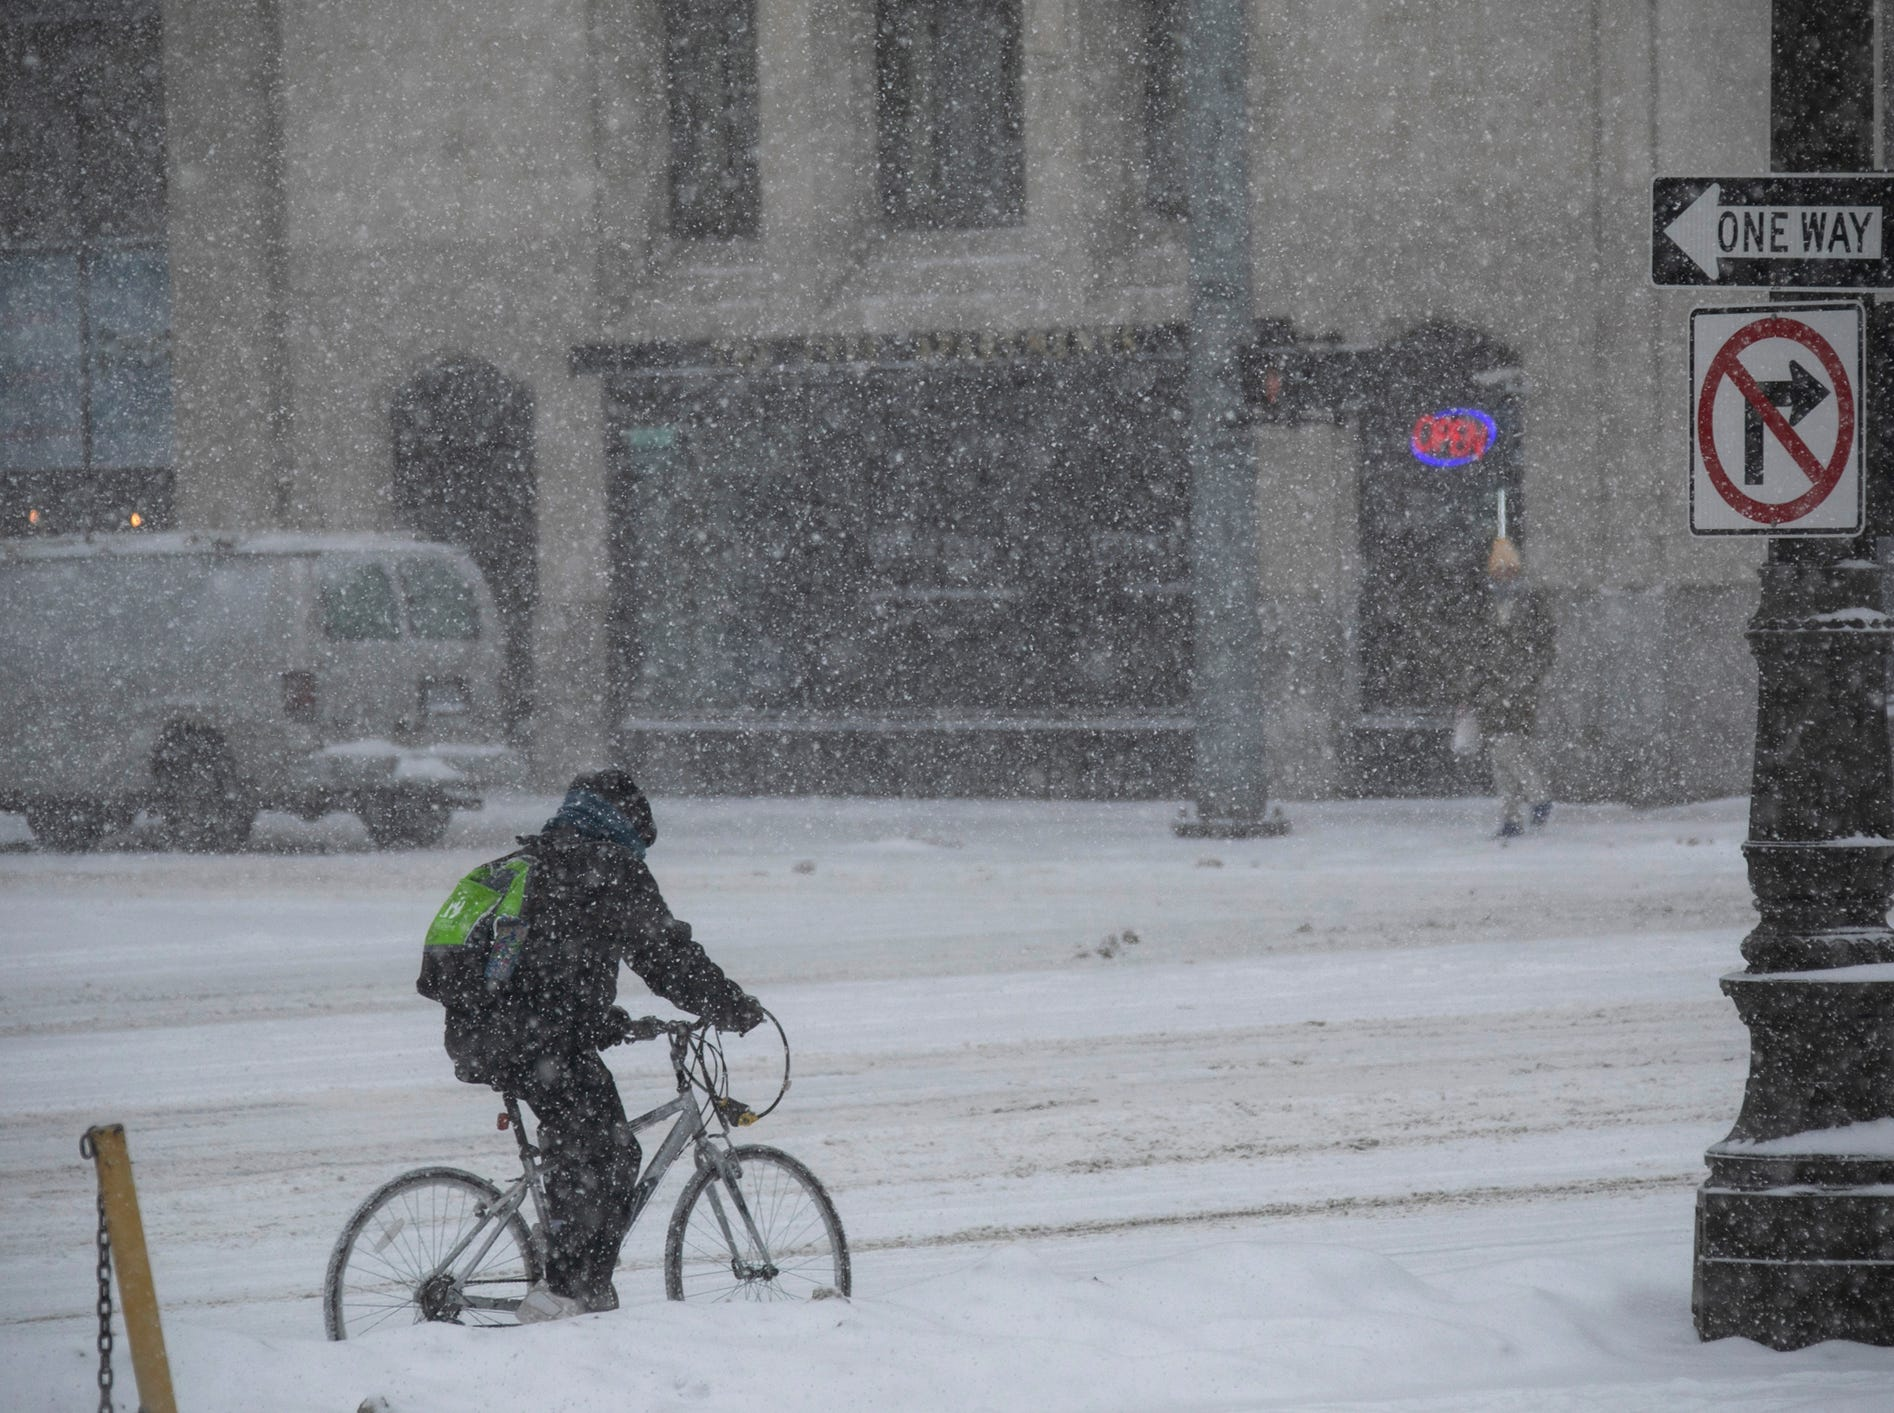 A brave cyclists rides their bike northbound on Woodward Avenue as heavy snows cover the area on Monday, Jan. 28, 2019.